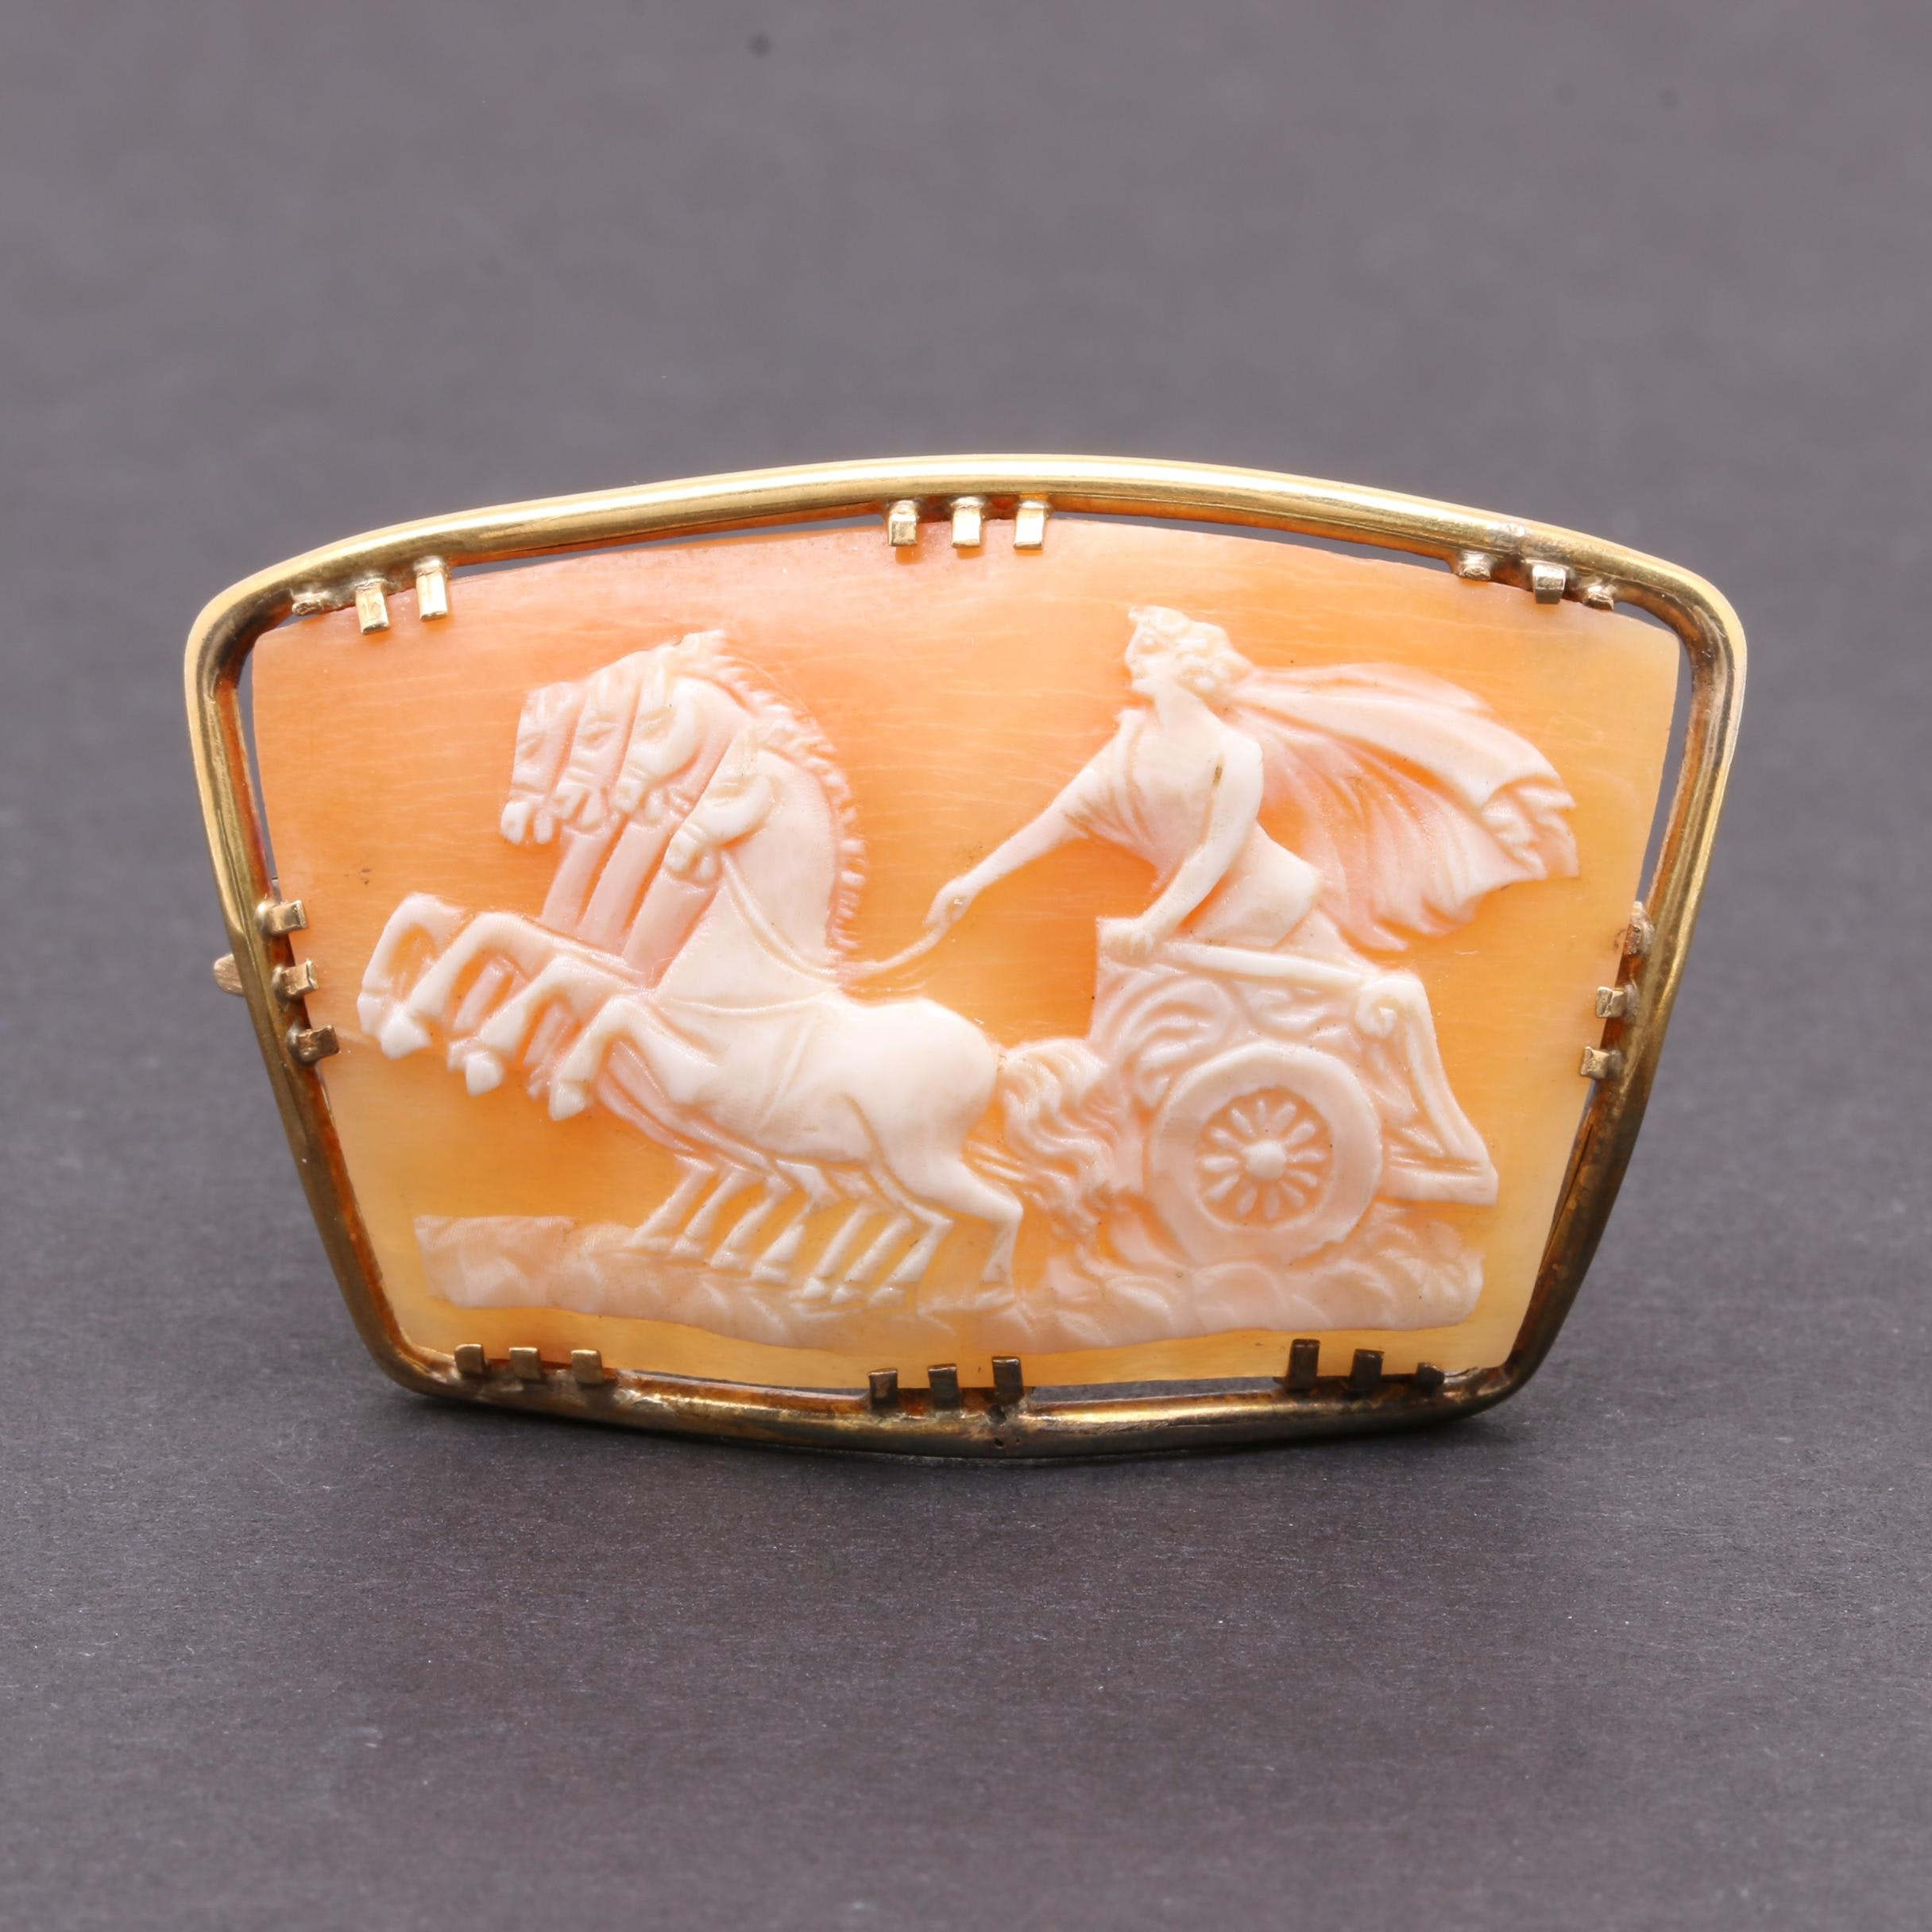 Circa Early 1900s 14K Yellow Gold Helmet Shell Cameo Brooch